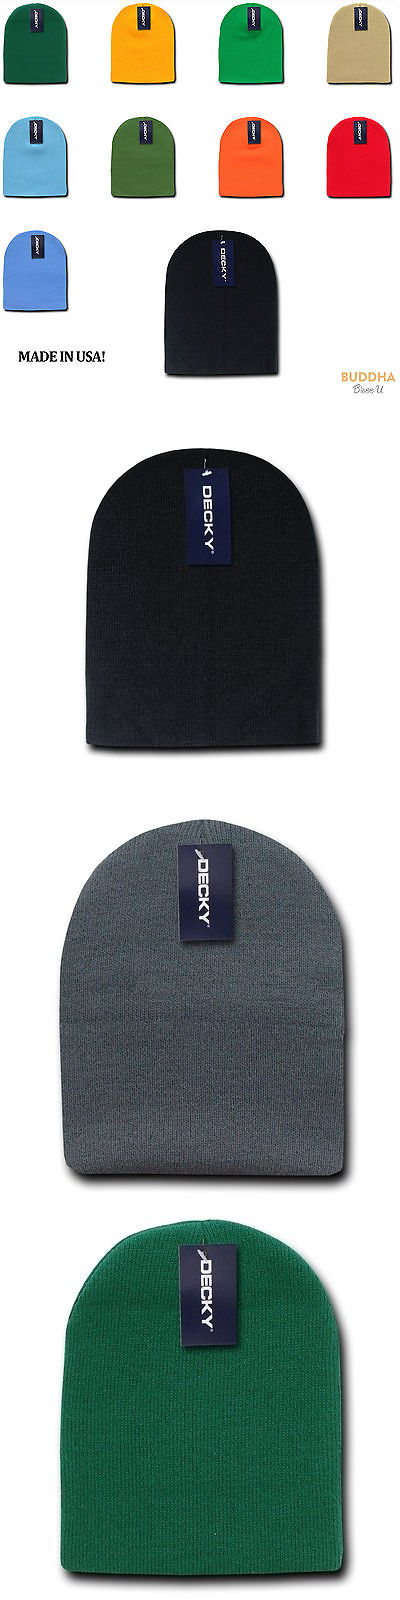 8e97ff61f5c Mens Accessories 45053  1 Dozen Made In Usa America Decky Beanies Gi Short Watch  Caps Hats Wholesale Lot -  BUY IT NOW ONLY   49.99 on eBay!